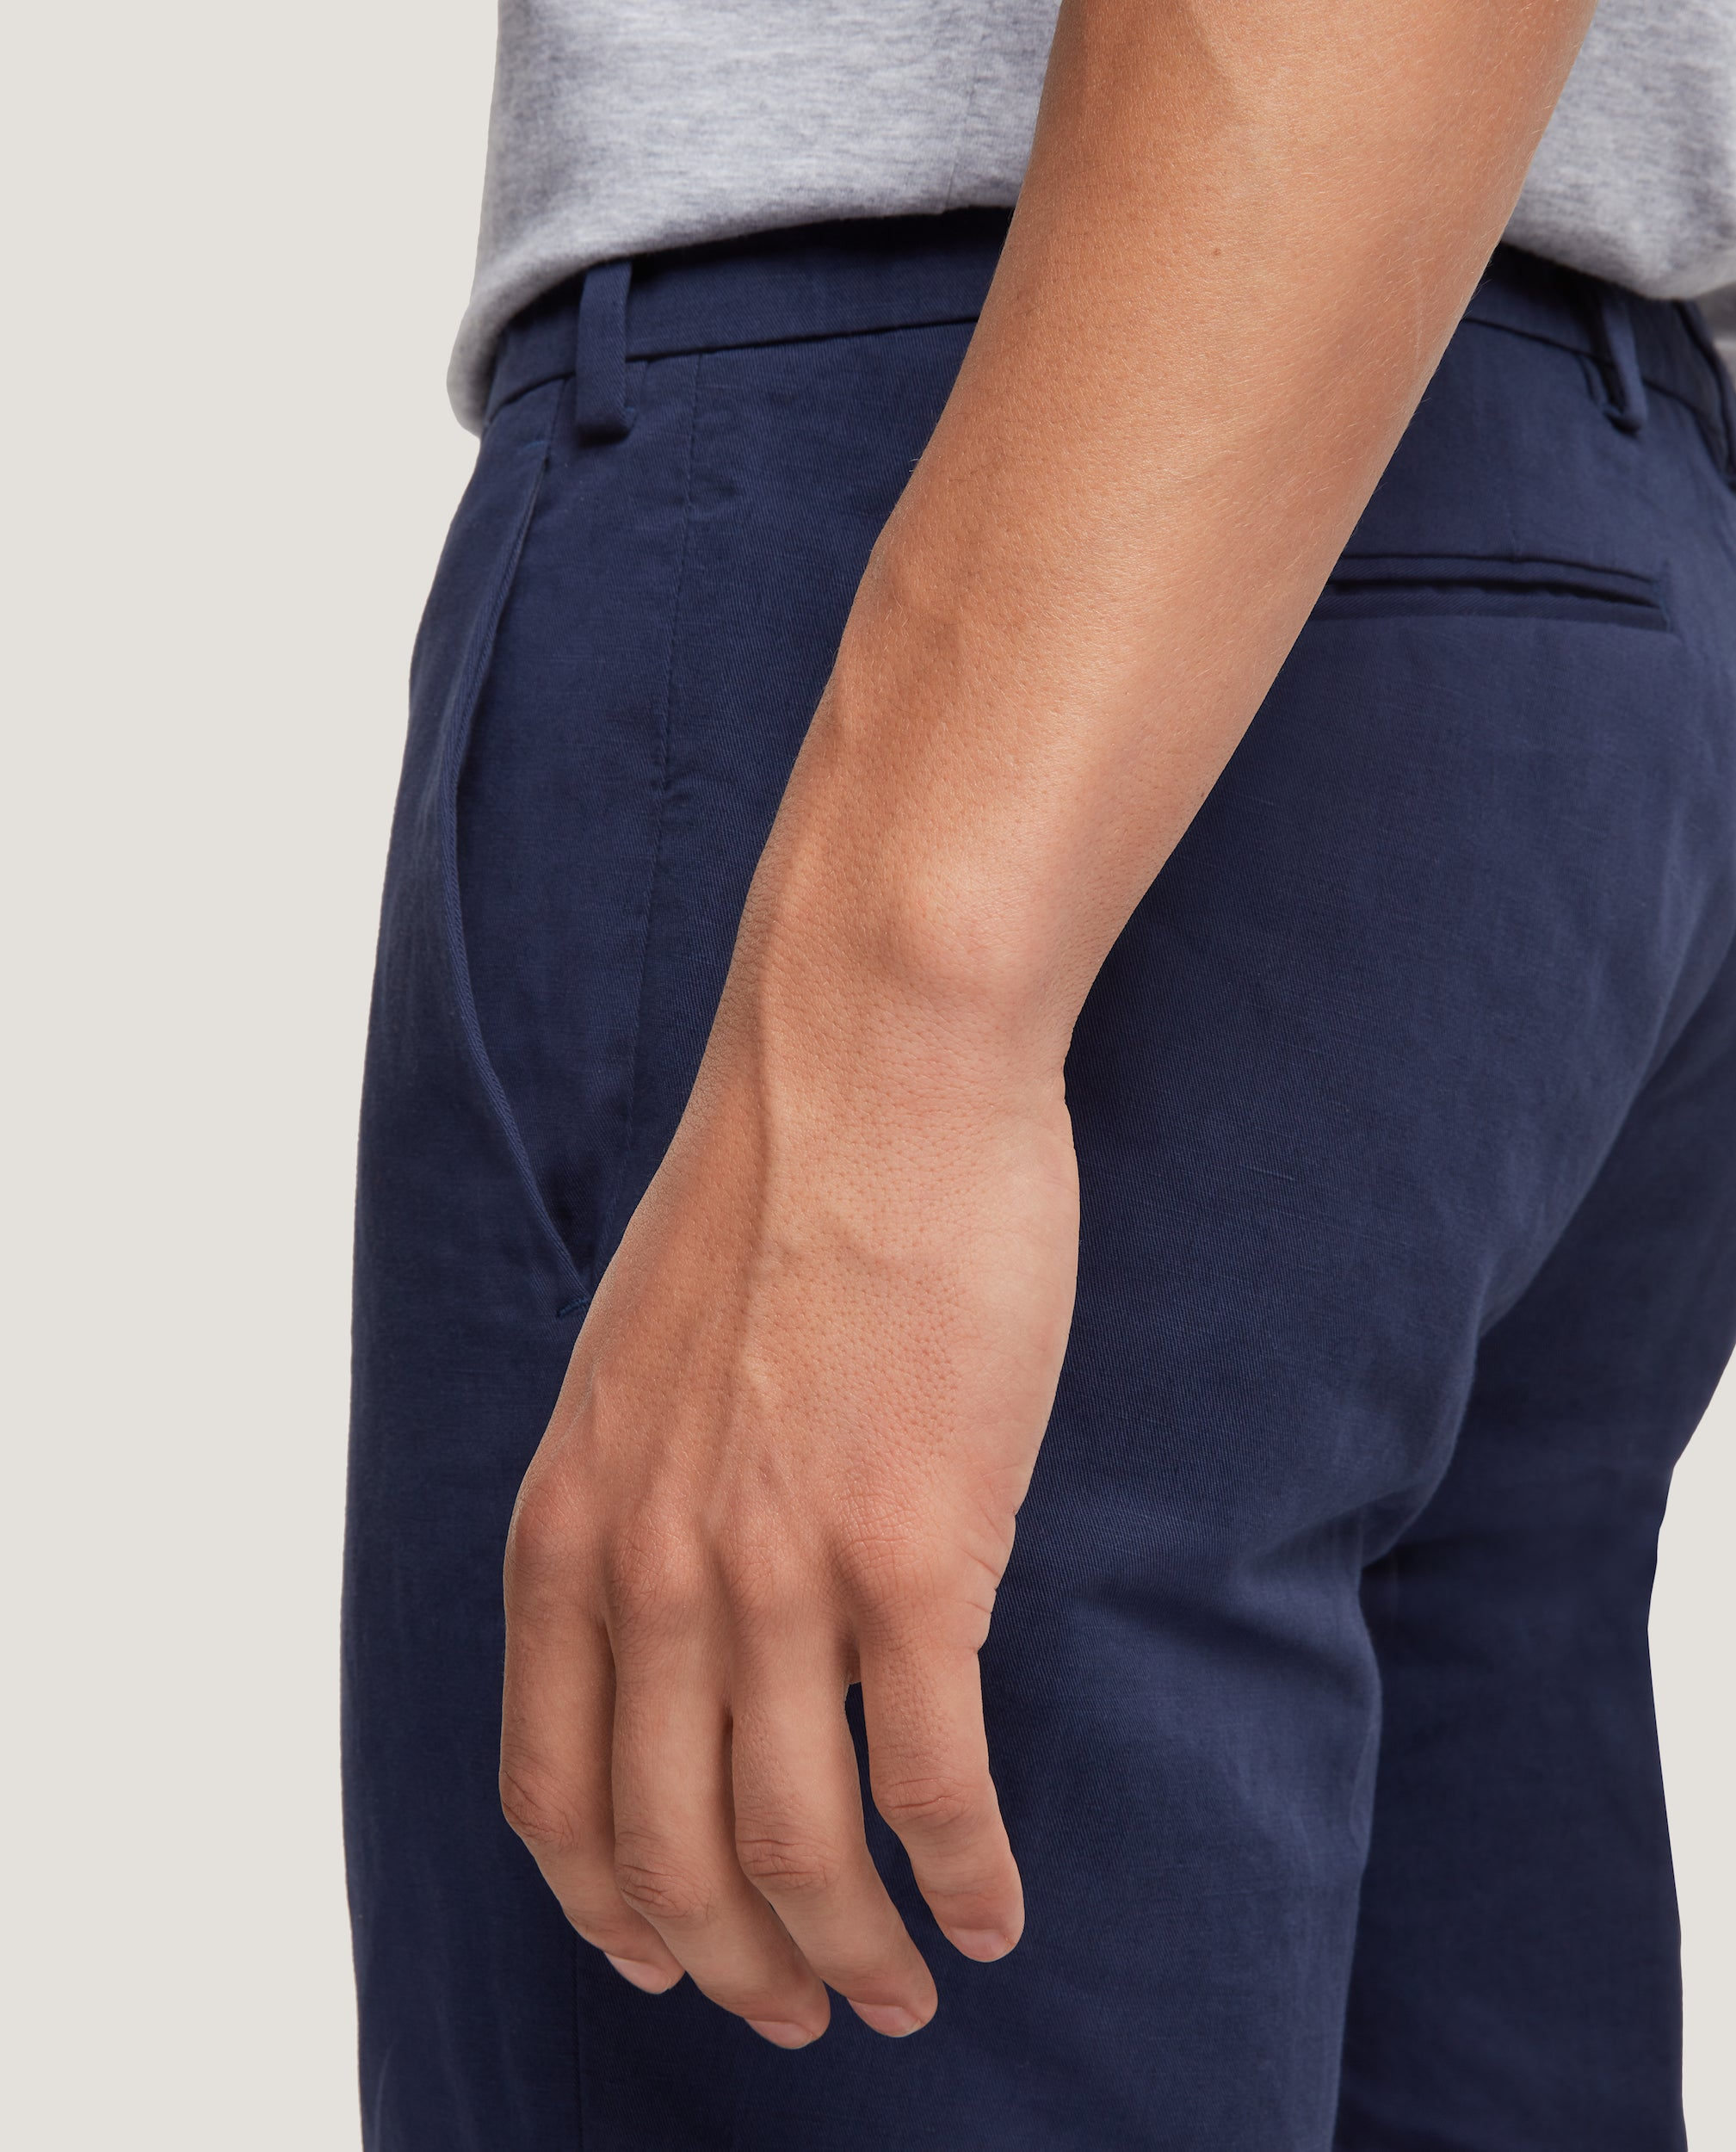 GEHRY Chino trousers | Slim fit | Cotton linen | Blue